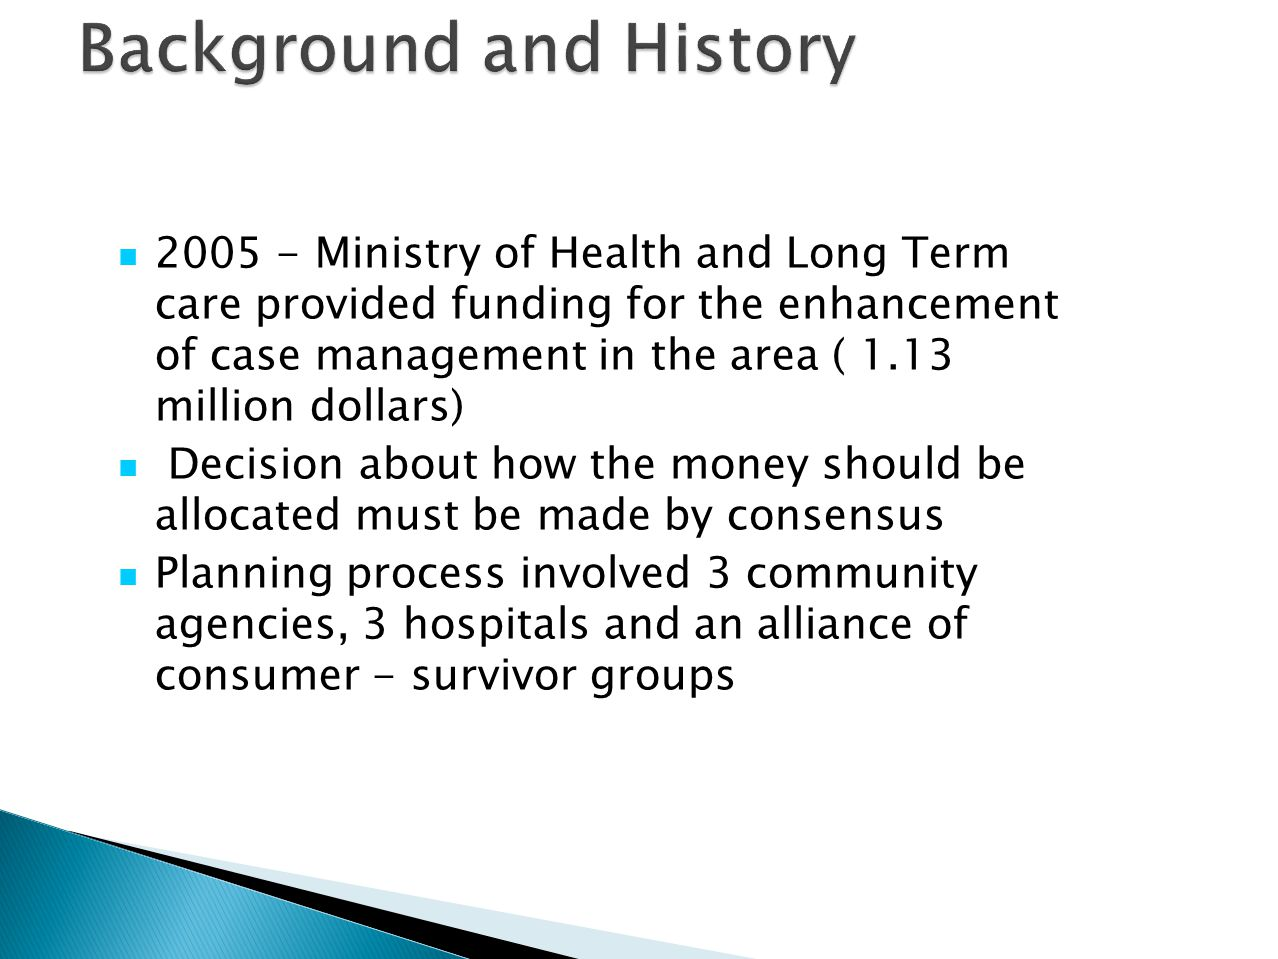 2005 - Ministry of Health and Long Term care provided funding for the enhancement of case management in the area ( 1.13 million dollars) Decision about how the money should be allocated must be made by consensus Planning process involved 3 community agencies, 3 hospitals and an alliance of consumer - survivor groups